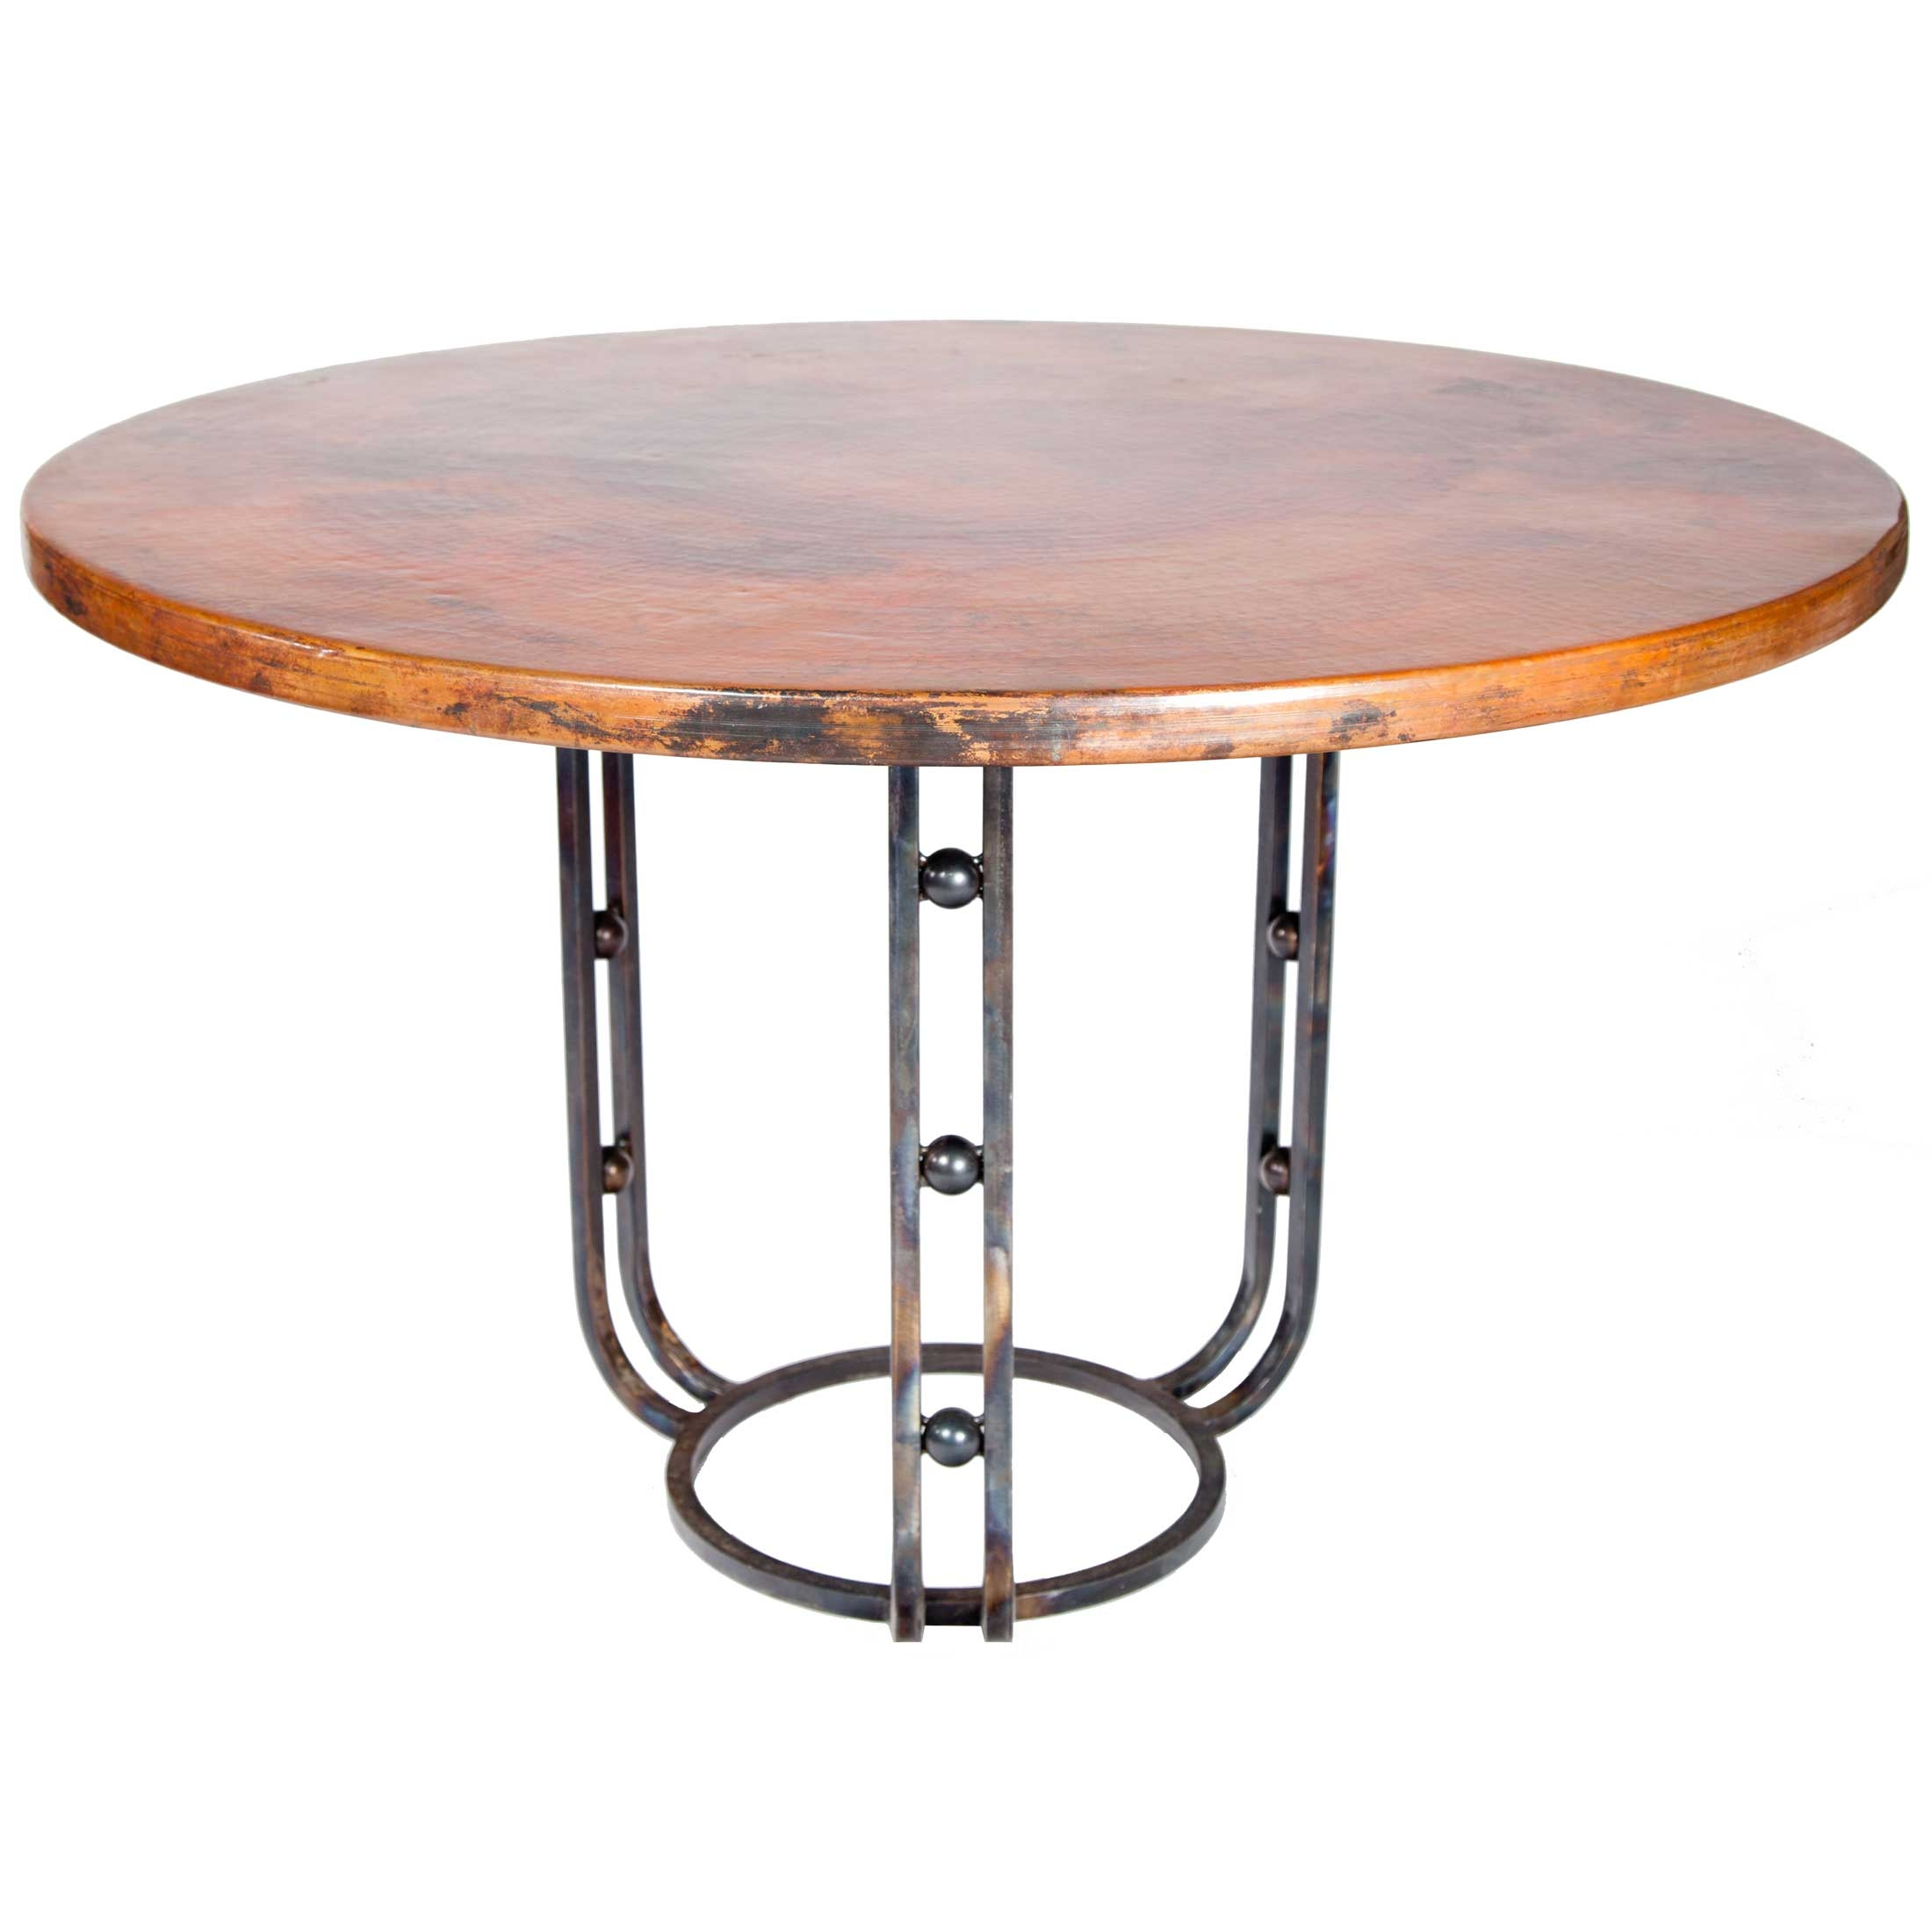 Clayton iron dining table with 54 round hammered copper top for Iron dining table